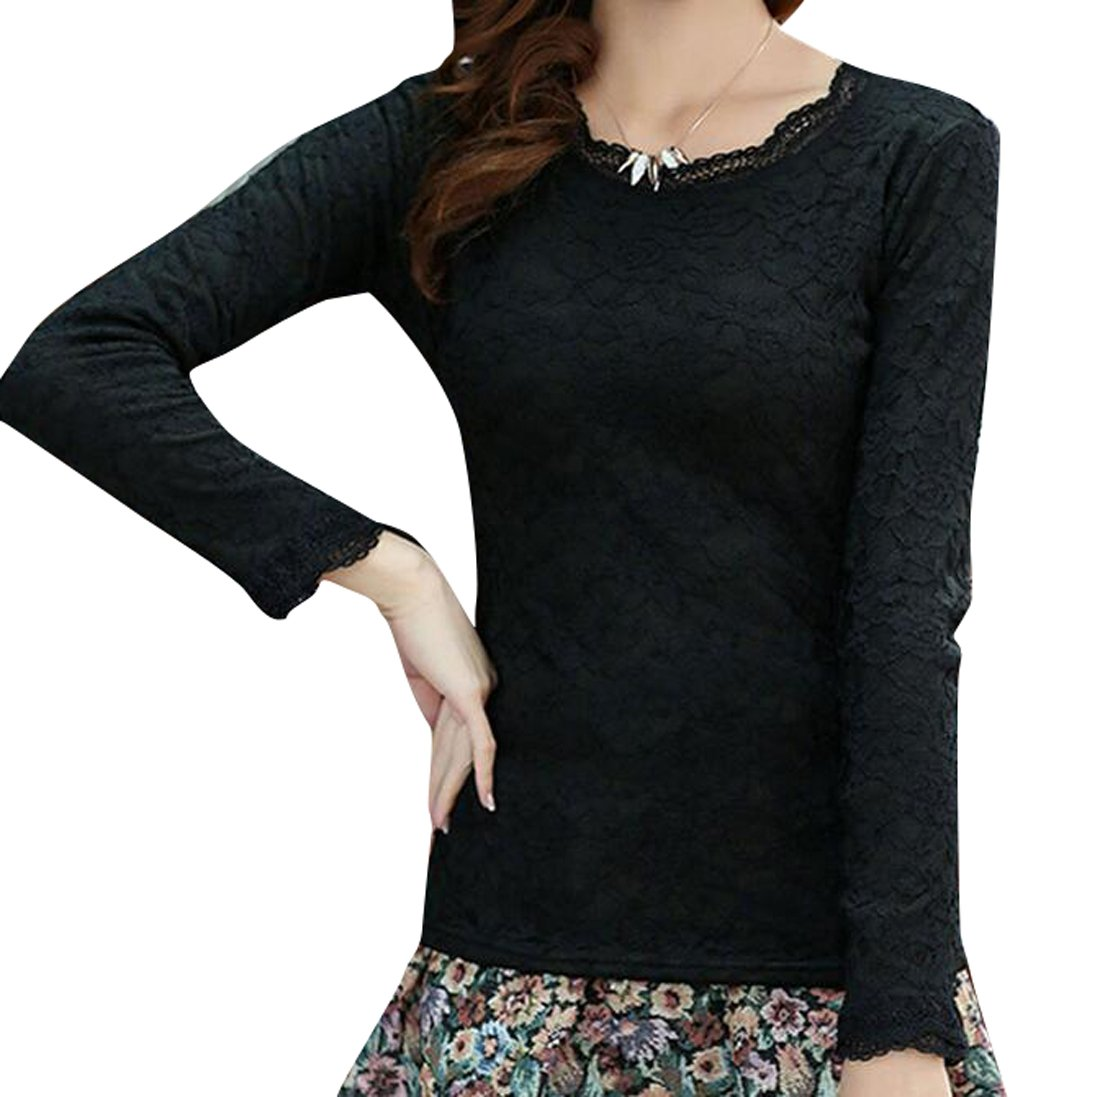 Oberora-Women Casual Long Sleeve Fleece Lined Thicken Thermal Shirt Blouse Tops Black L